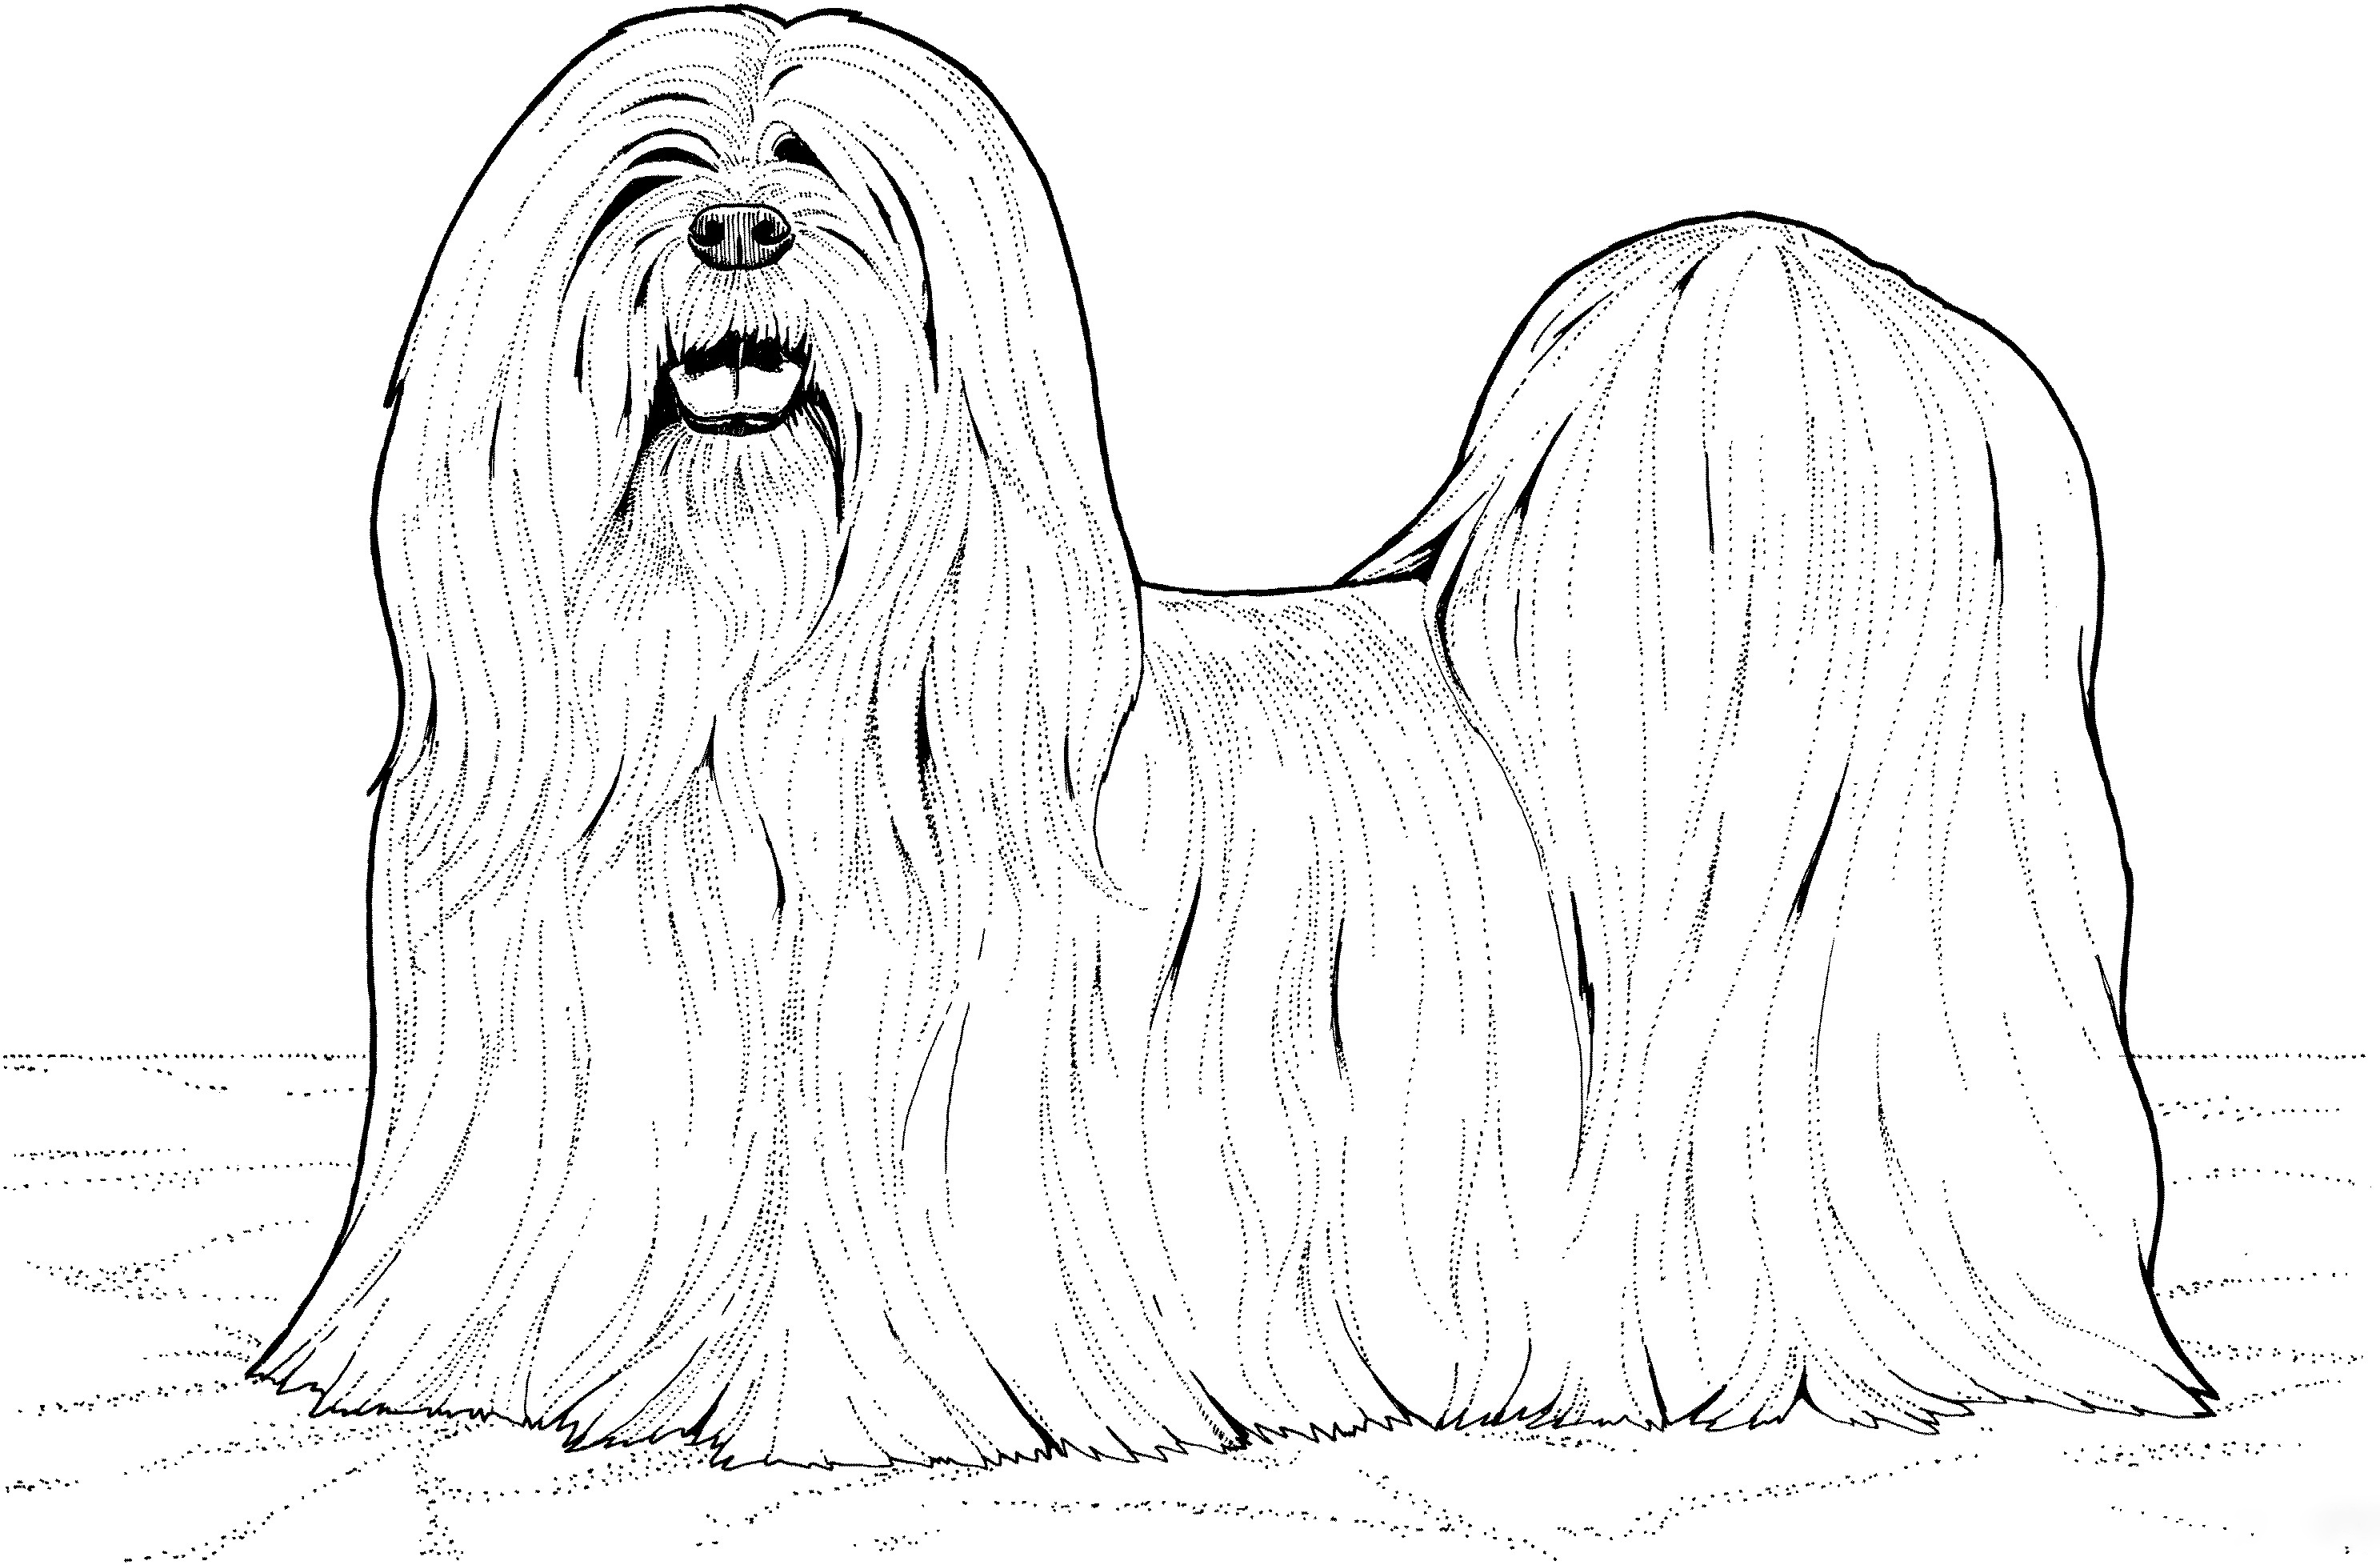 Lhasa Apso Details Coloring Page